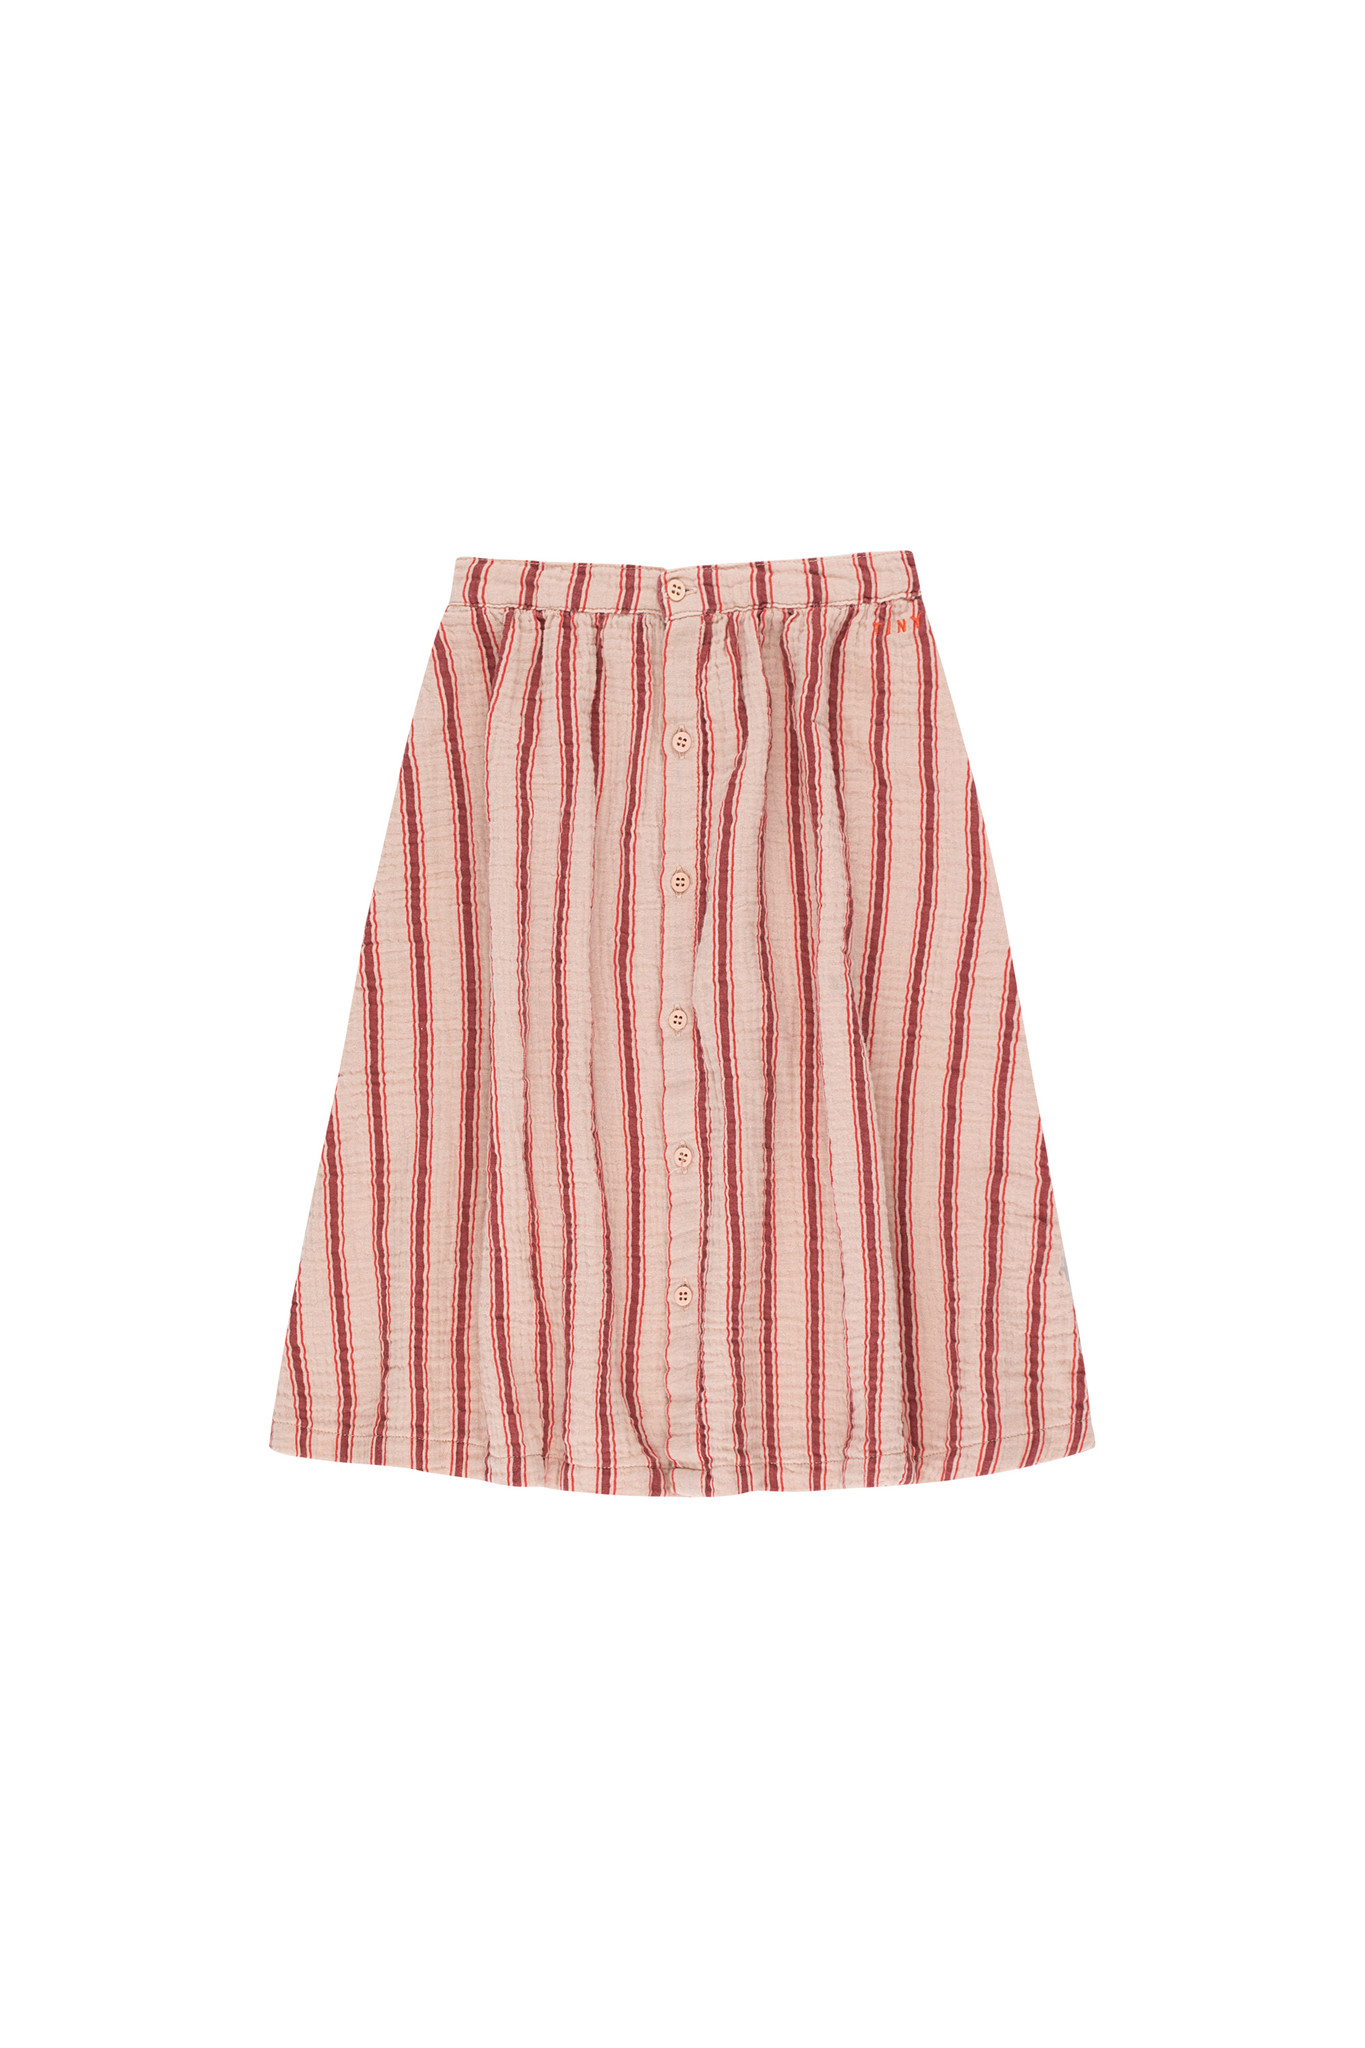 RETRO STRIPES MIDI SKIRT - Light Nude / Dark Brown-1